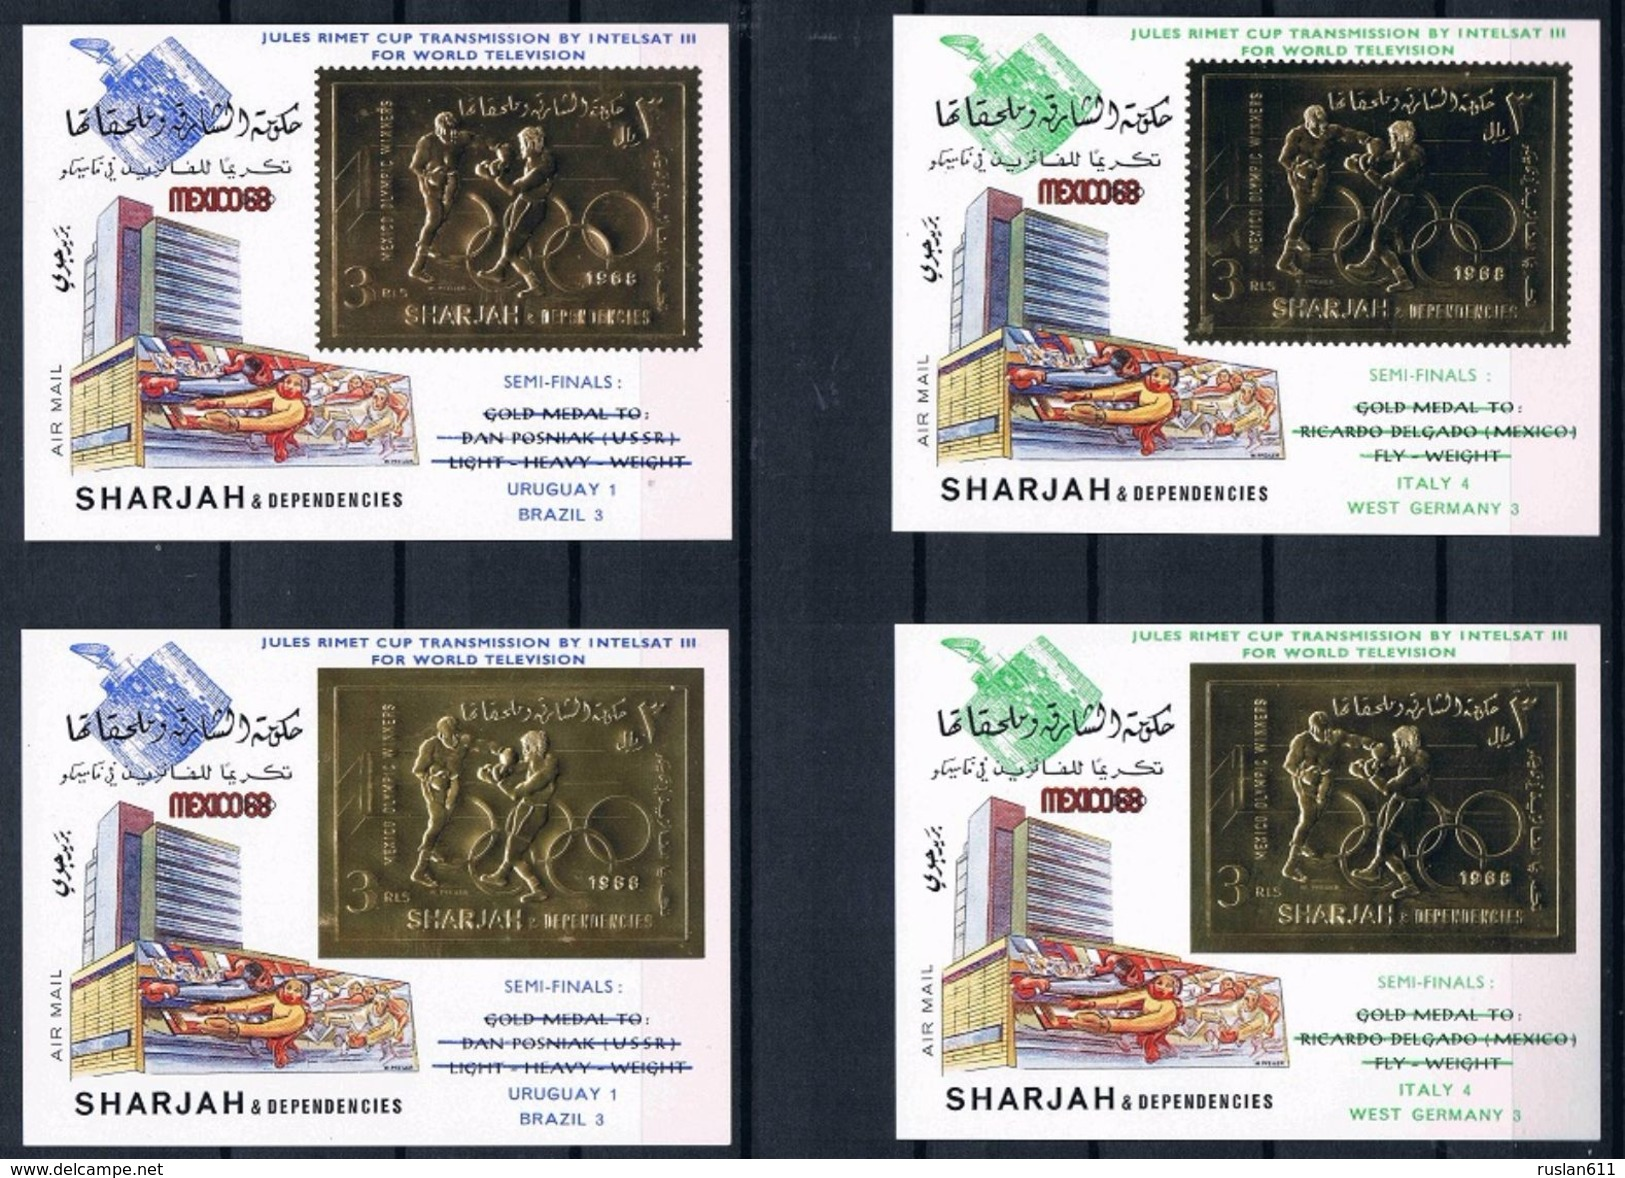 Extra RARE!!!! Soccer Football Sharjah 8 Bl Perf + Imperf 1970 World Cup Mexico MNH ** Olympics Mexico 1968 2 Scans - World Cup